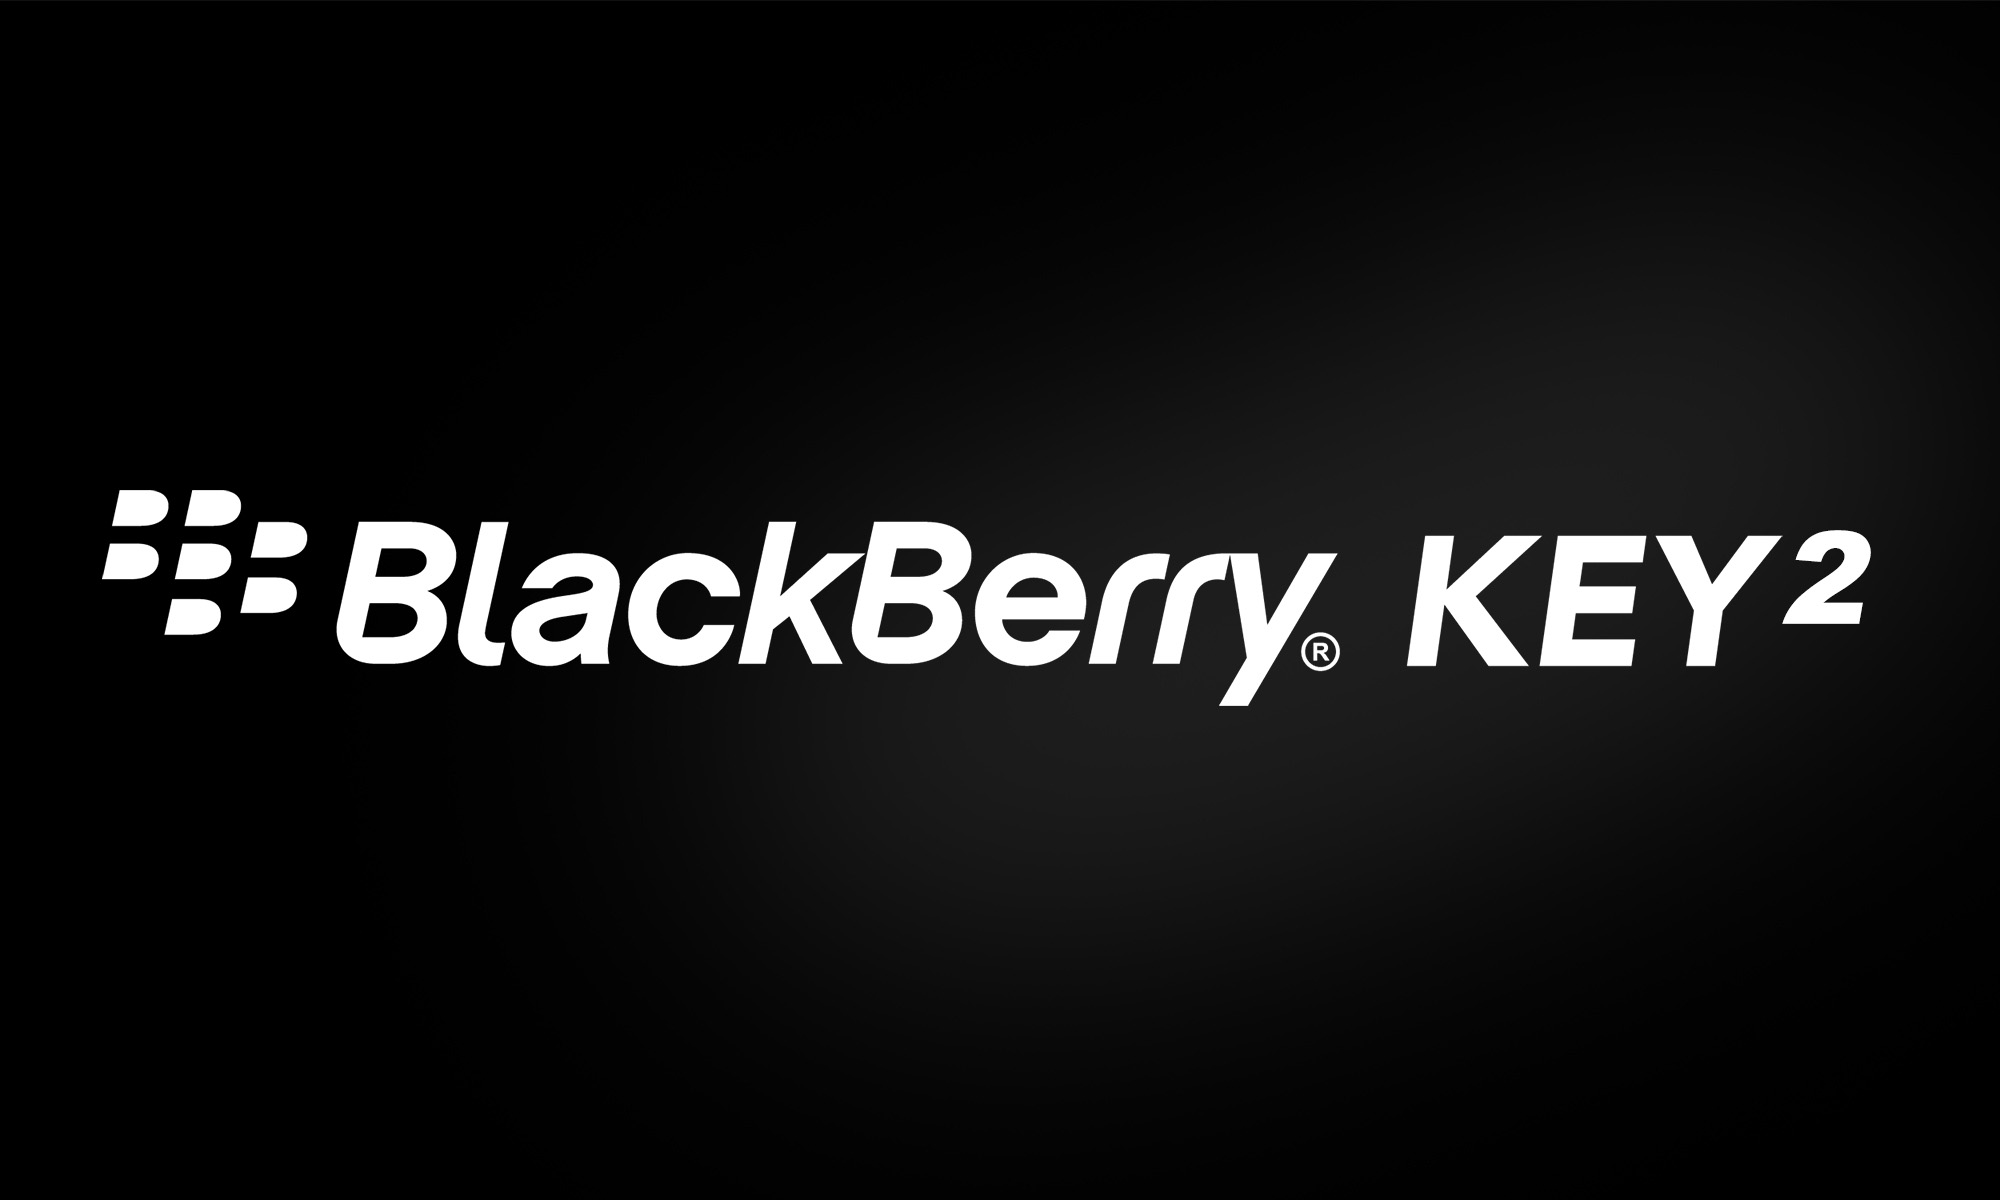 BlackBerry Mobile покажет BlackBerry KEY2 всем желающим